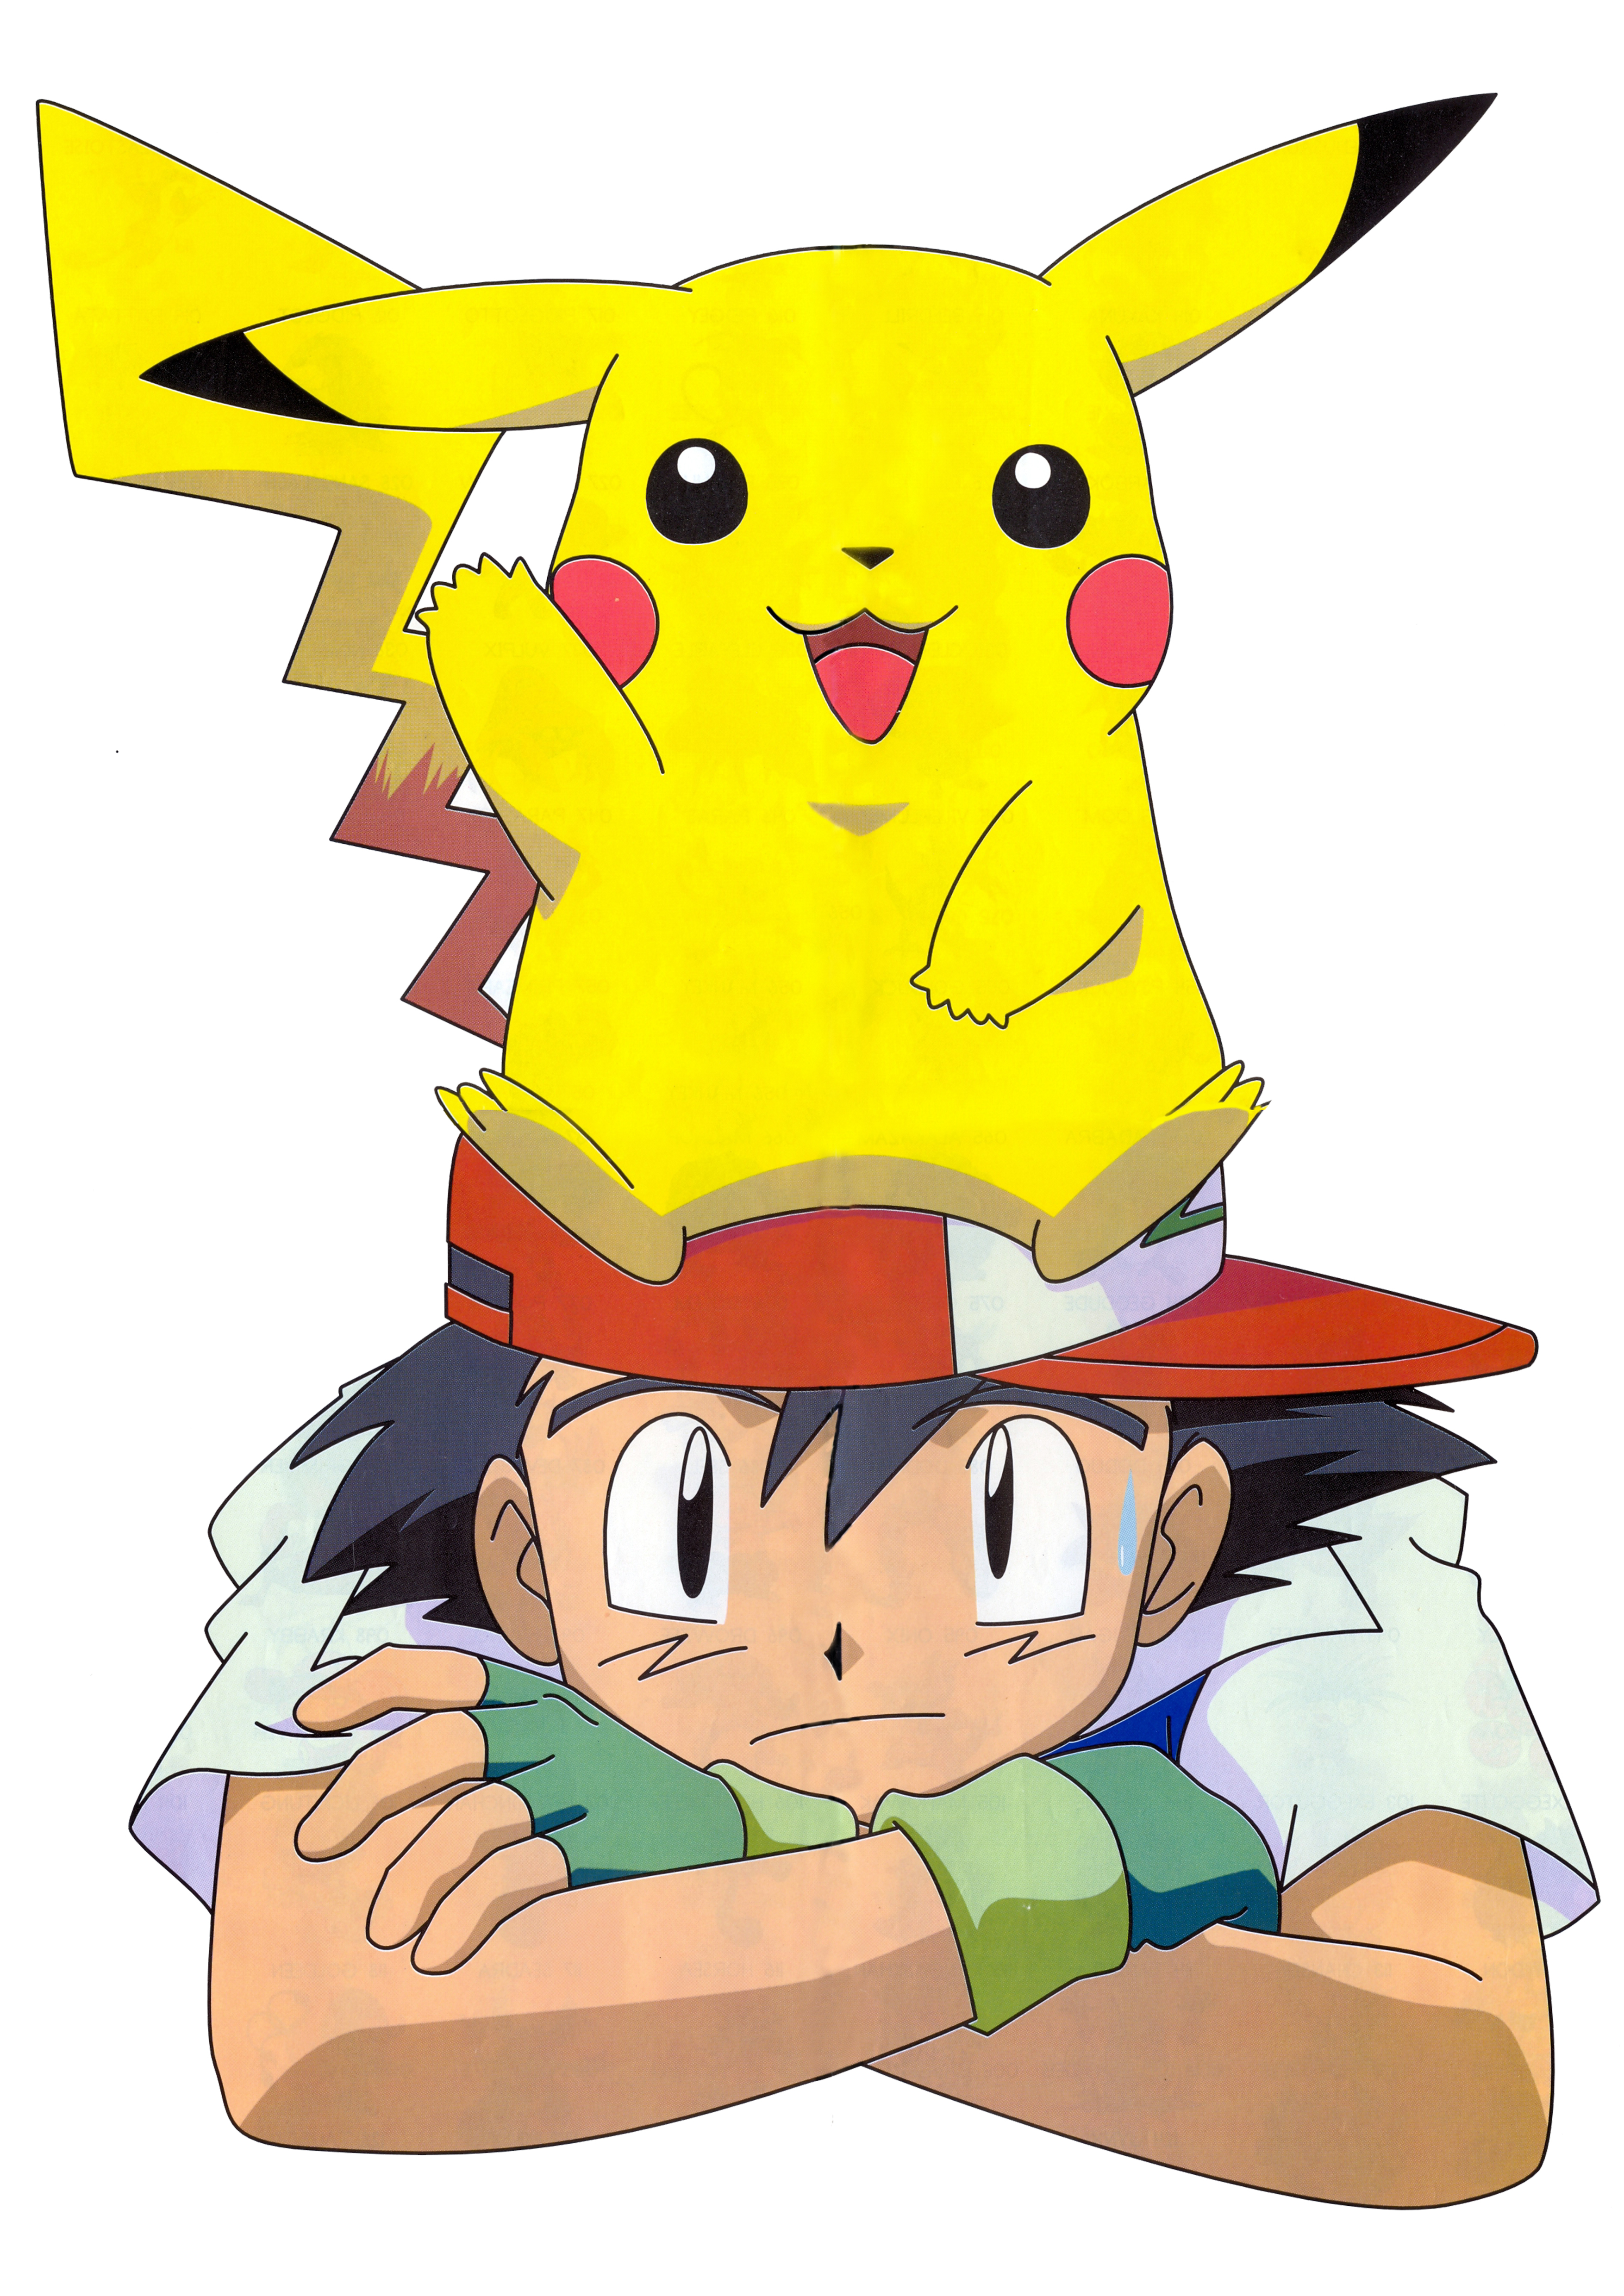 Ash pikachu pokemon and